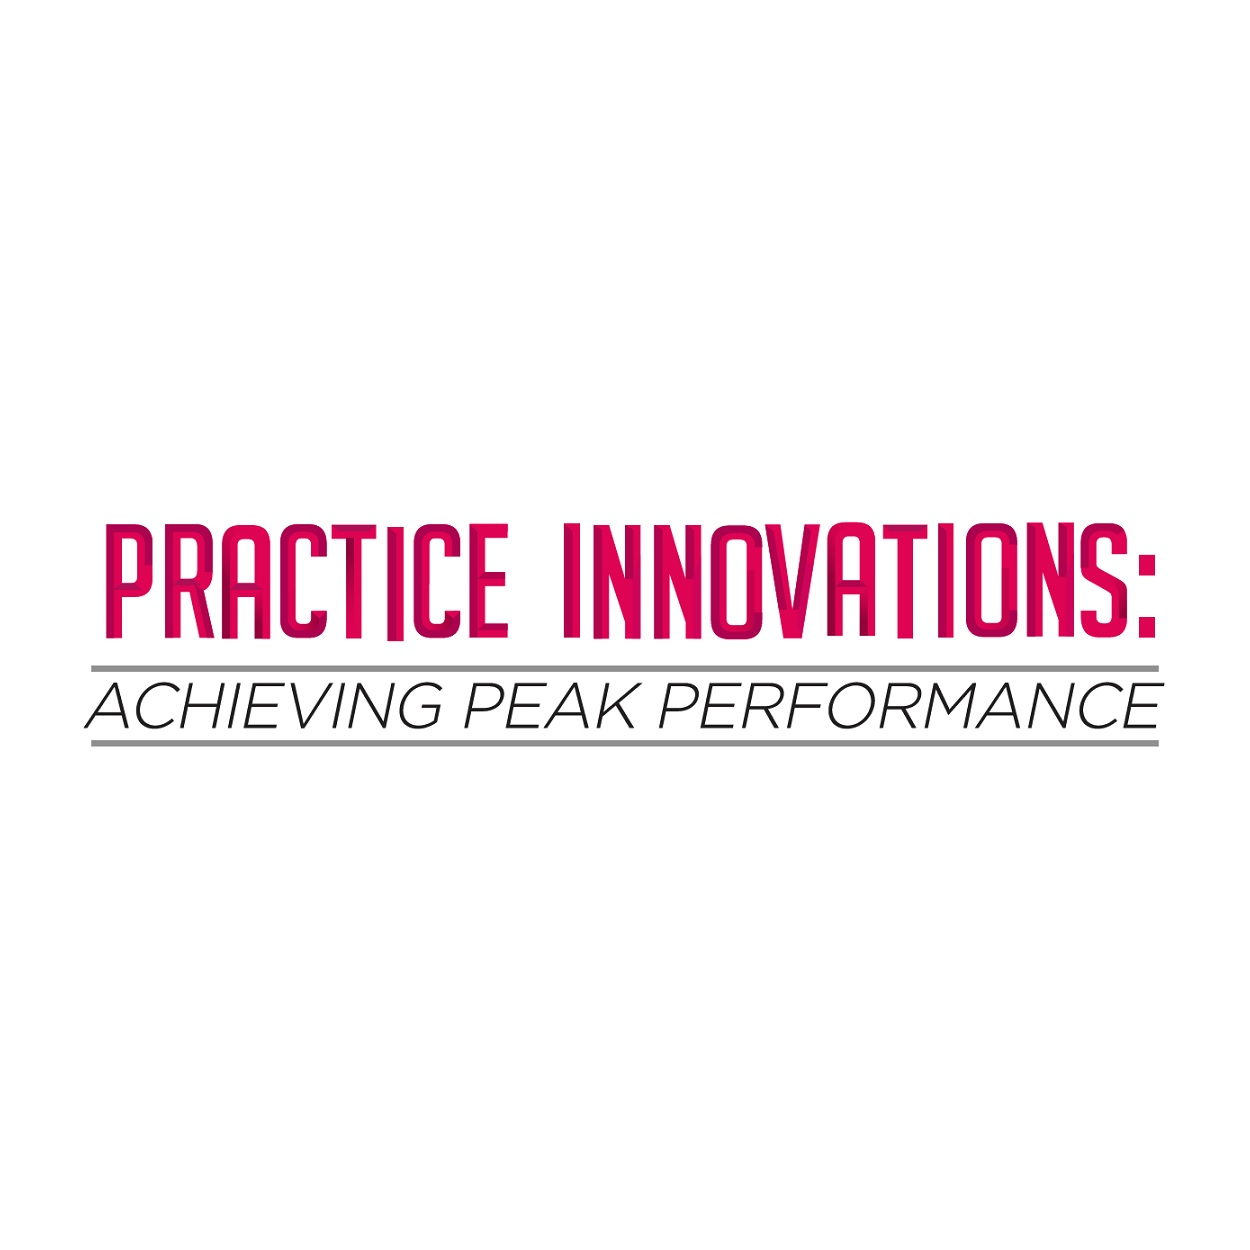 Practice Innovations: Achieving Peak Performance – 2019